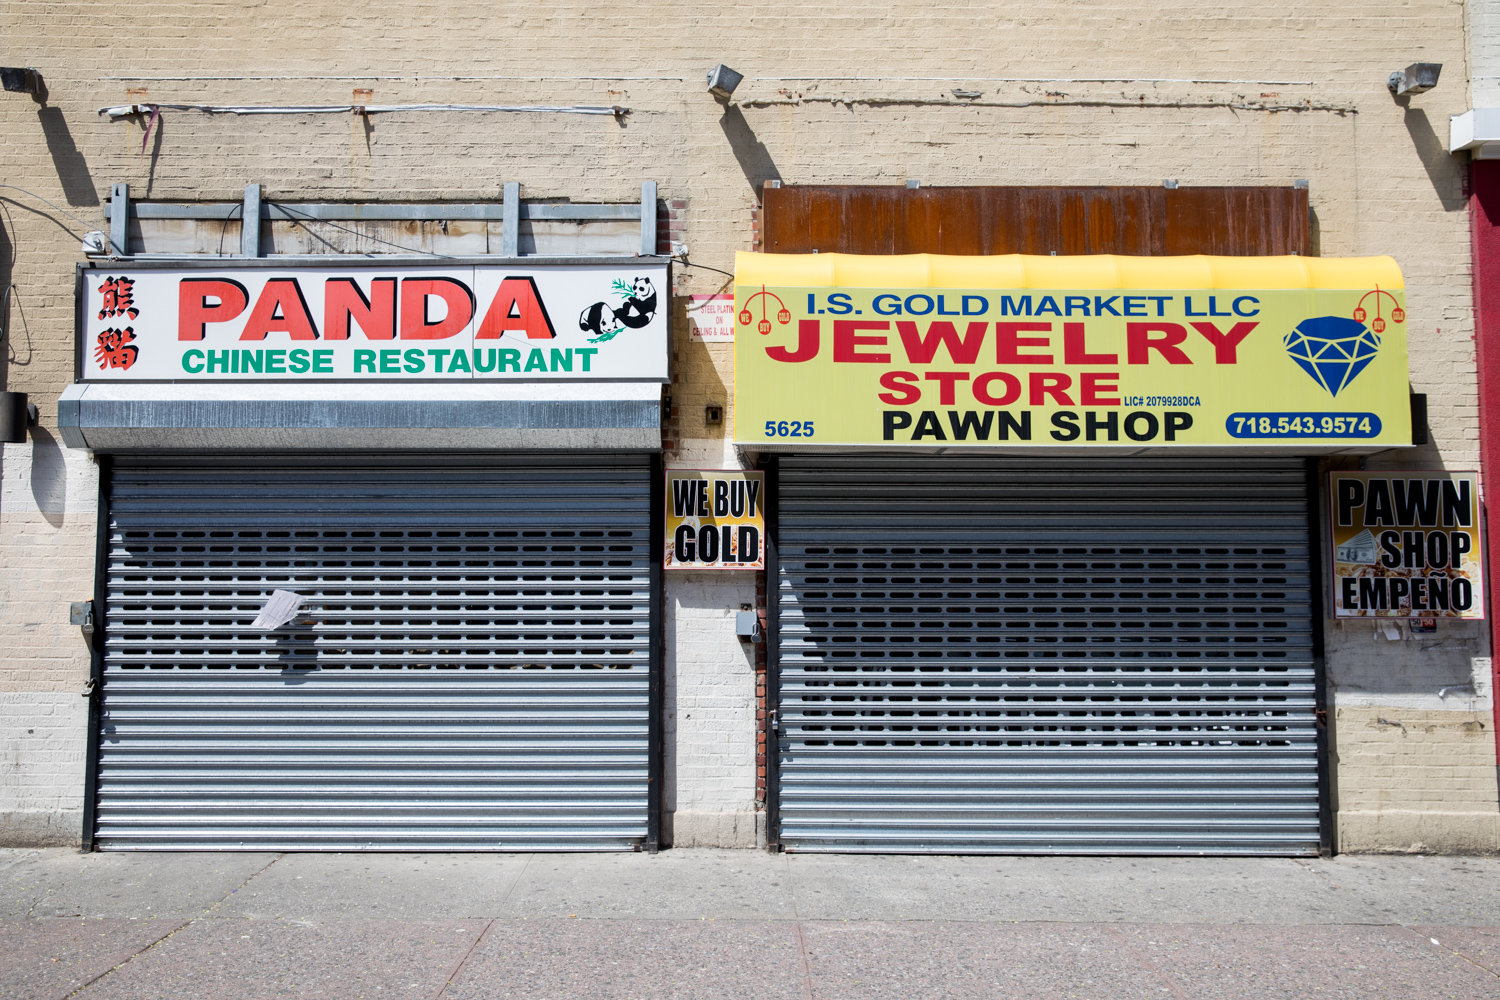 For a time, Gold Market Jewelry Store at 5625 Broadway was closed as the coronavirus pandemic raged. But not long after it reopened, the store was attacked last week, just hours after a citywide curfew was enacted. Nearly $100,000 worth of gold was taken, according to the store's owner.